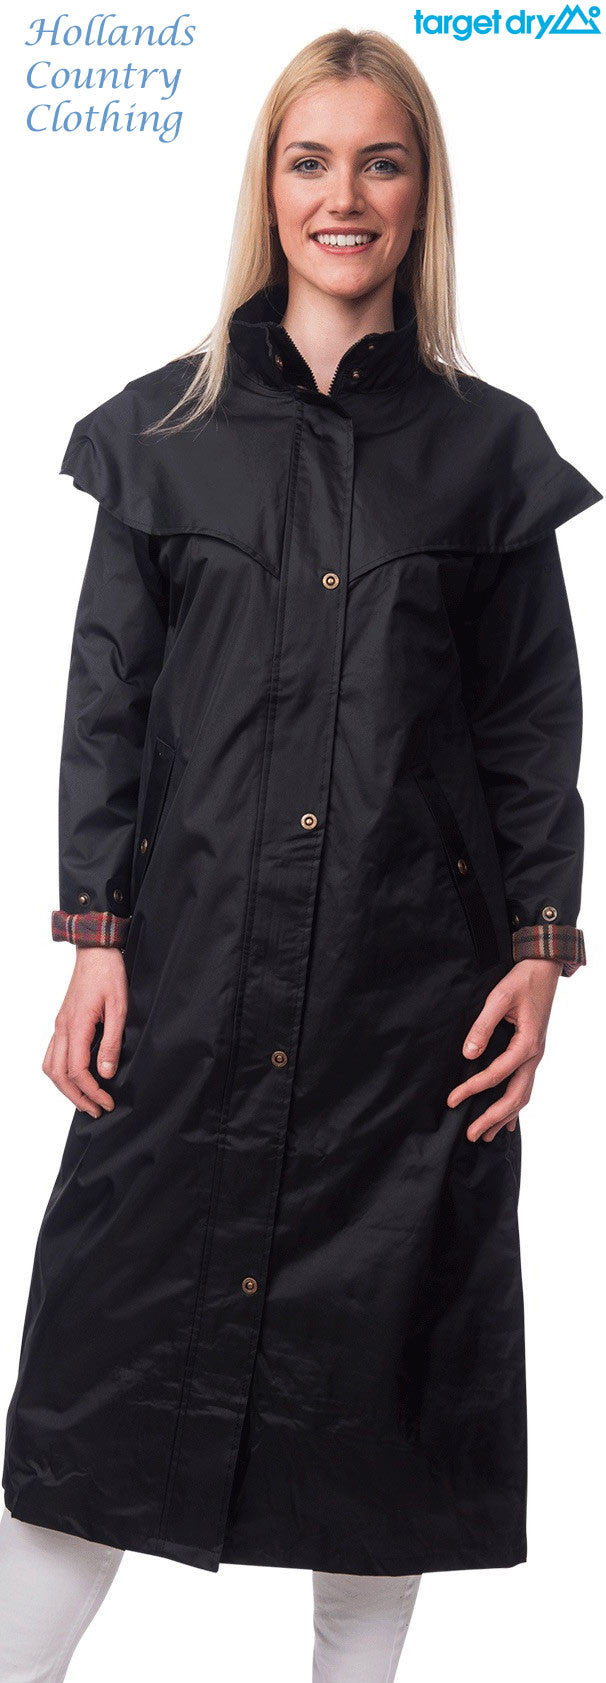 Target Dry Outback 2 Full Length Long Waterproof Coat. Black